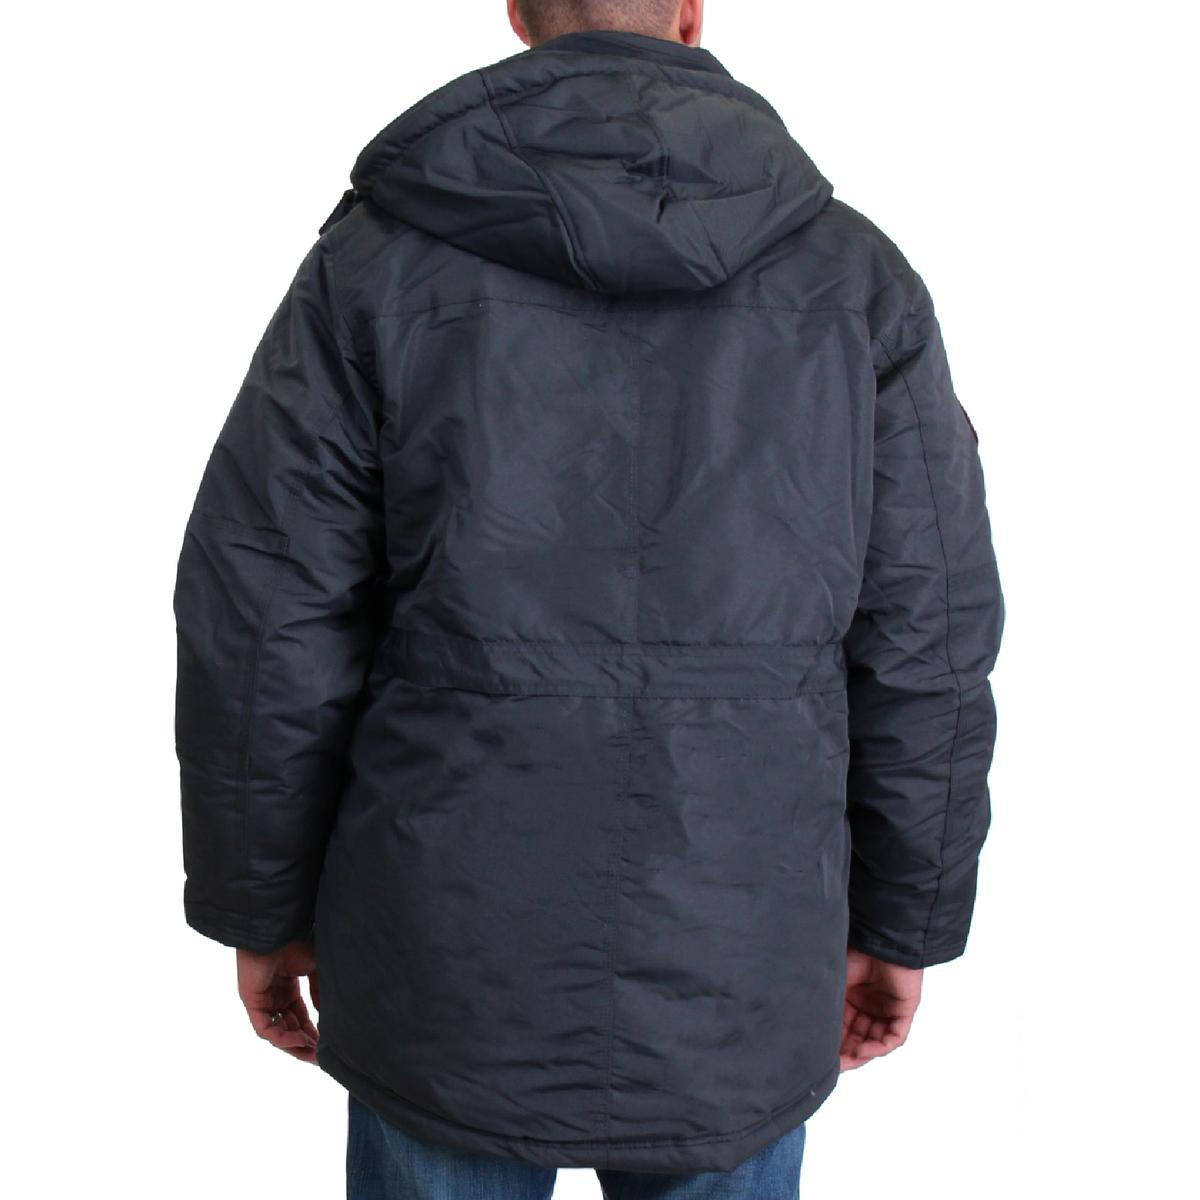 Canada-Weather-Gear-Systems-Men-039-s-Waterproof-Warm-Winter-Bib-Parka-Coat thumbnail 12